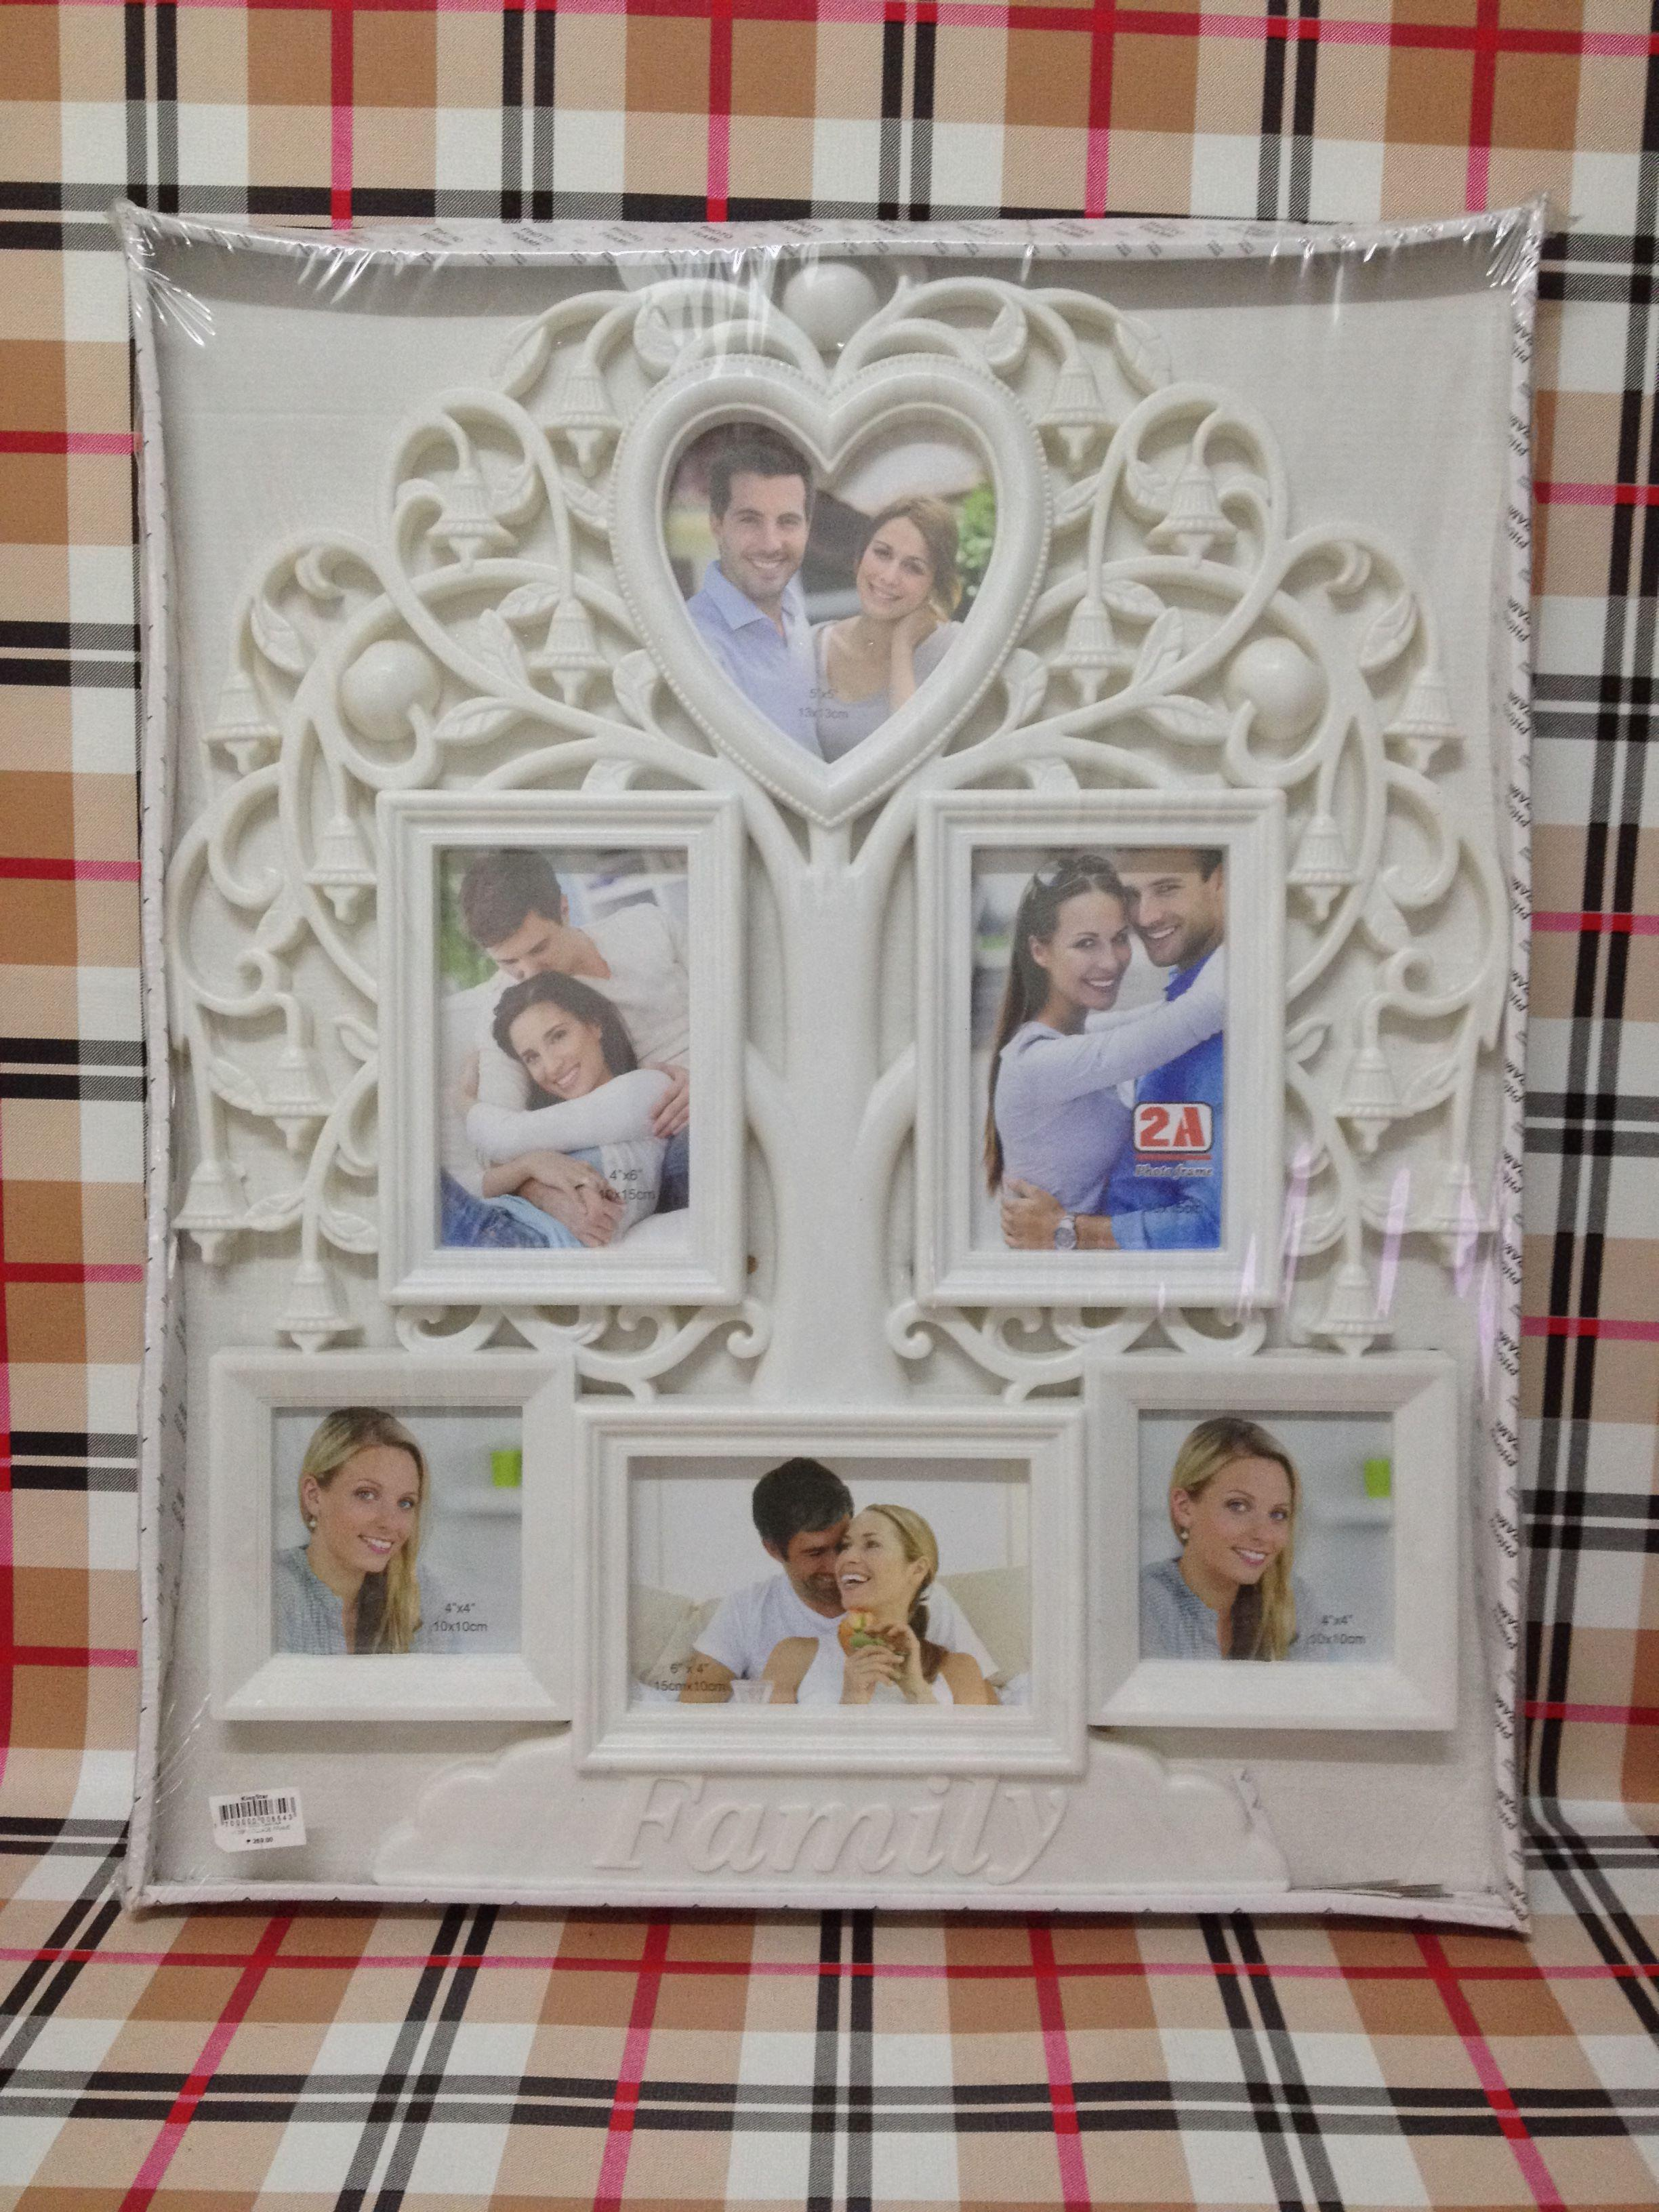 120392bfc Collage Photo Frame Plastic Collage Hanging Photo Frame Love Family Picture  Display Wall Home Decor